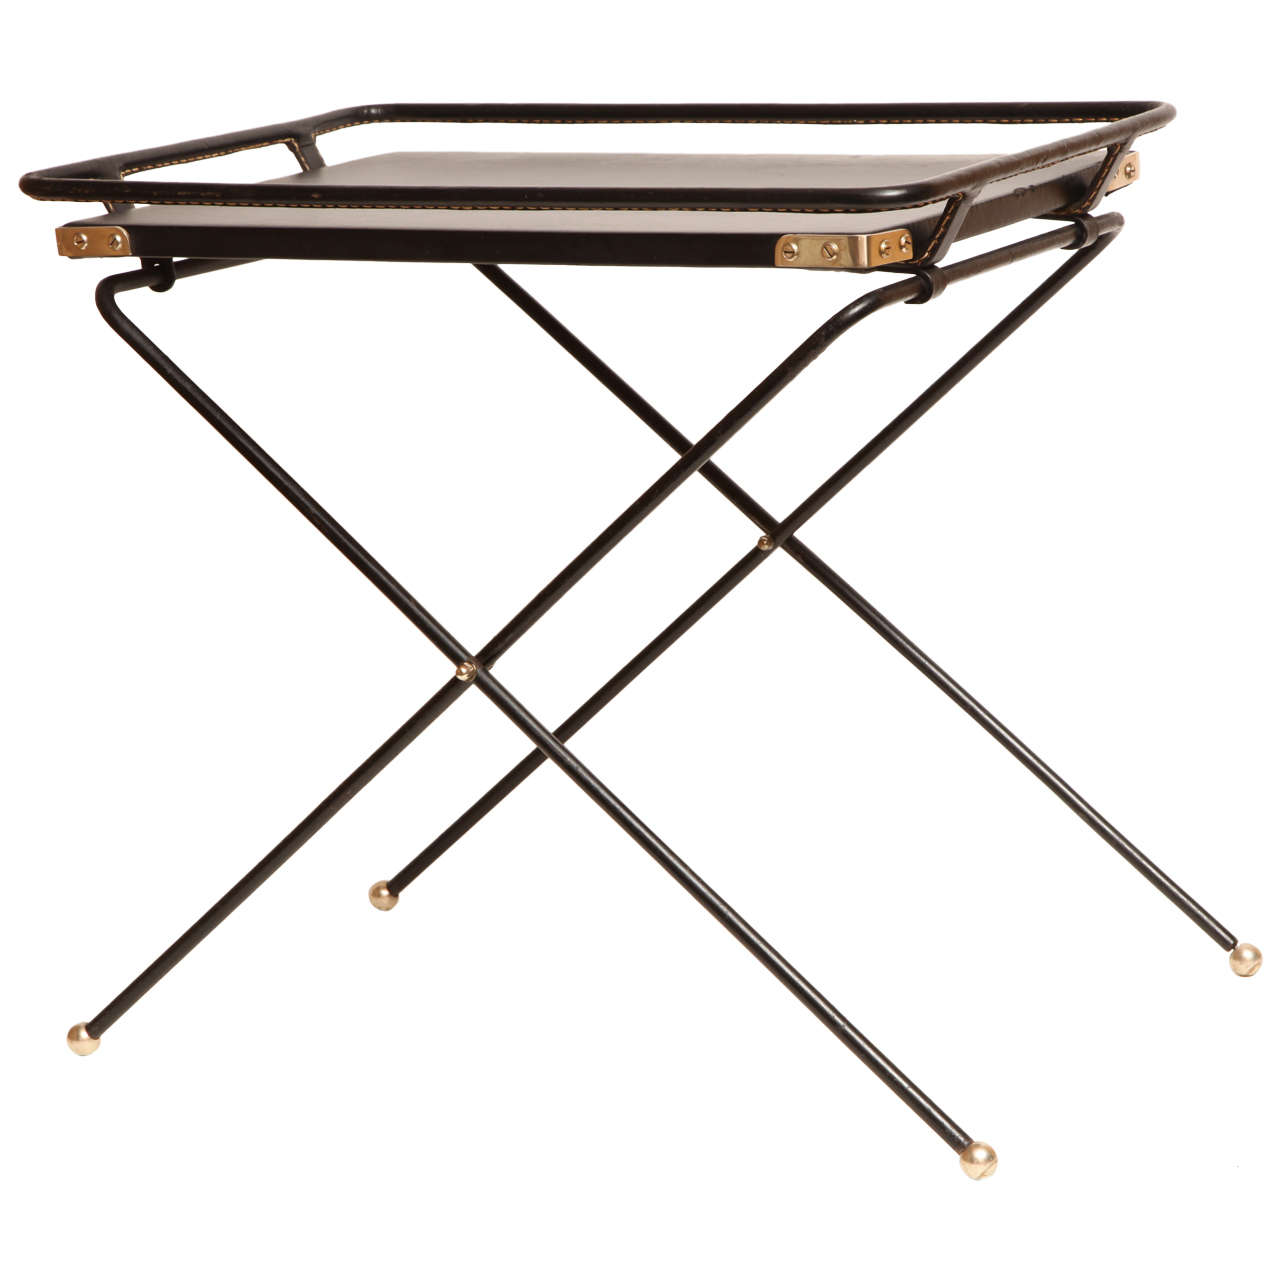 French 1960s Folding Tray Table in Black Leather at 1stdibs